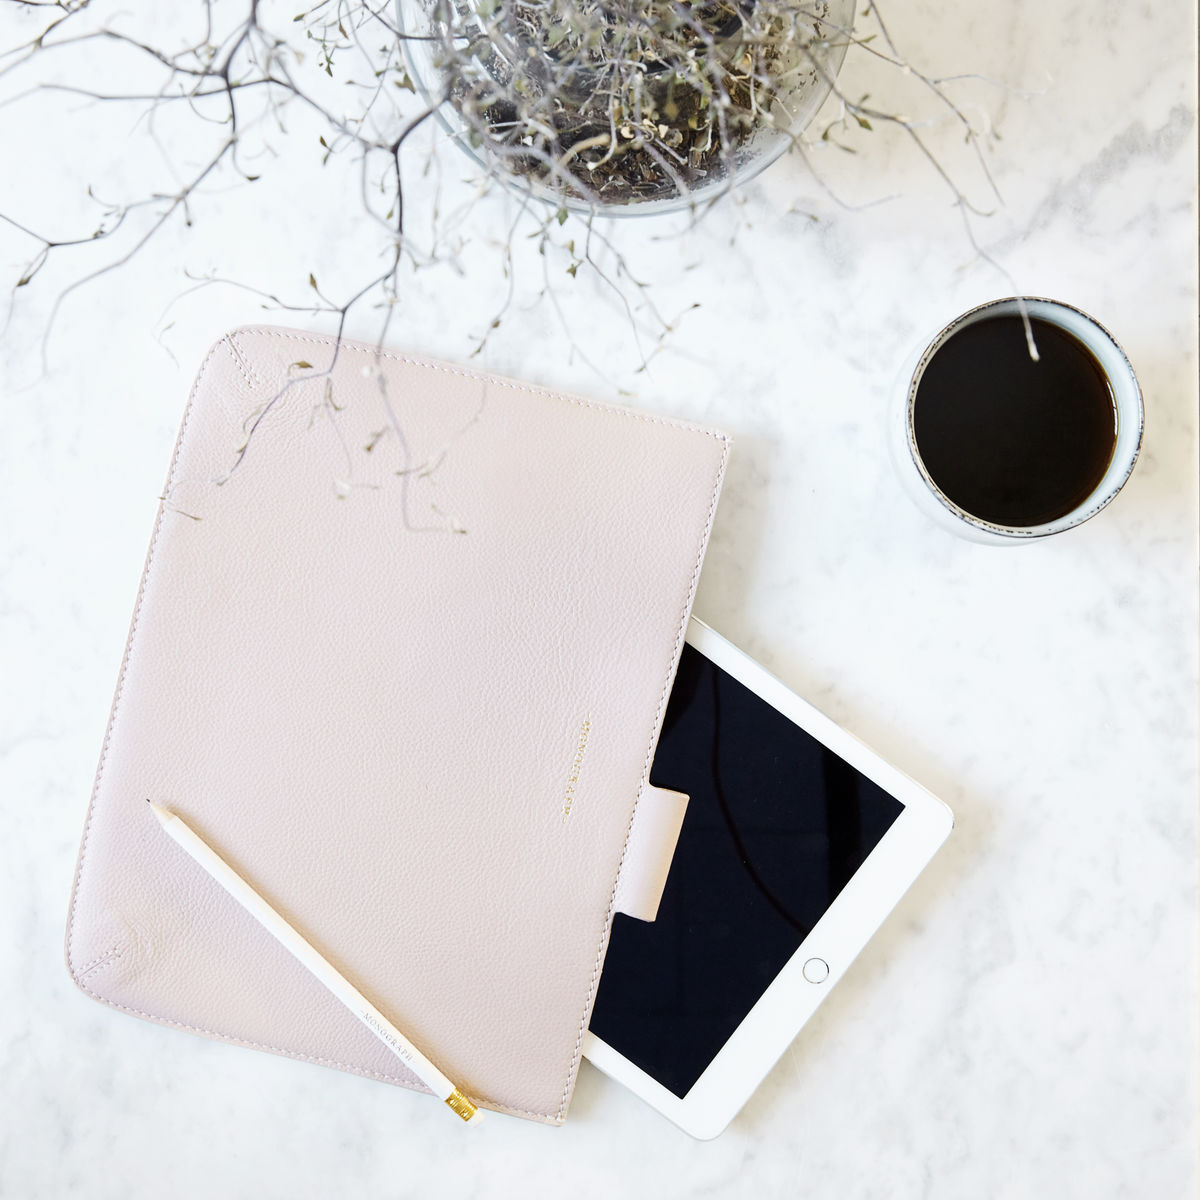 monograph tablet cover ipad leather pink by house doctor. Black Bedroom Furniture Sets. Home Design Ideas